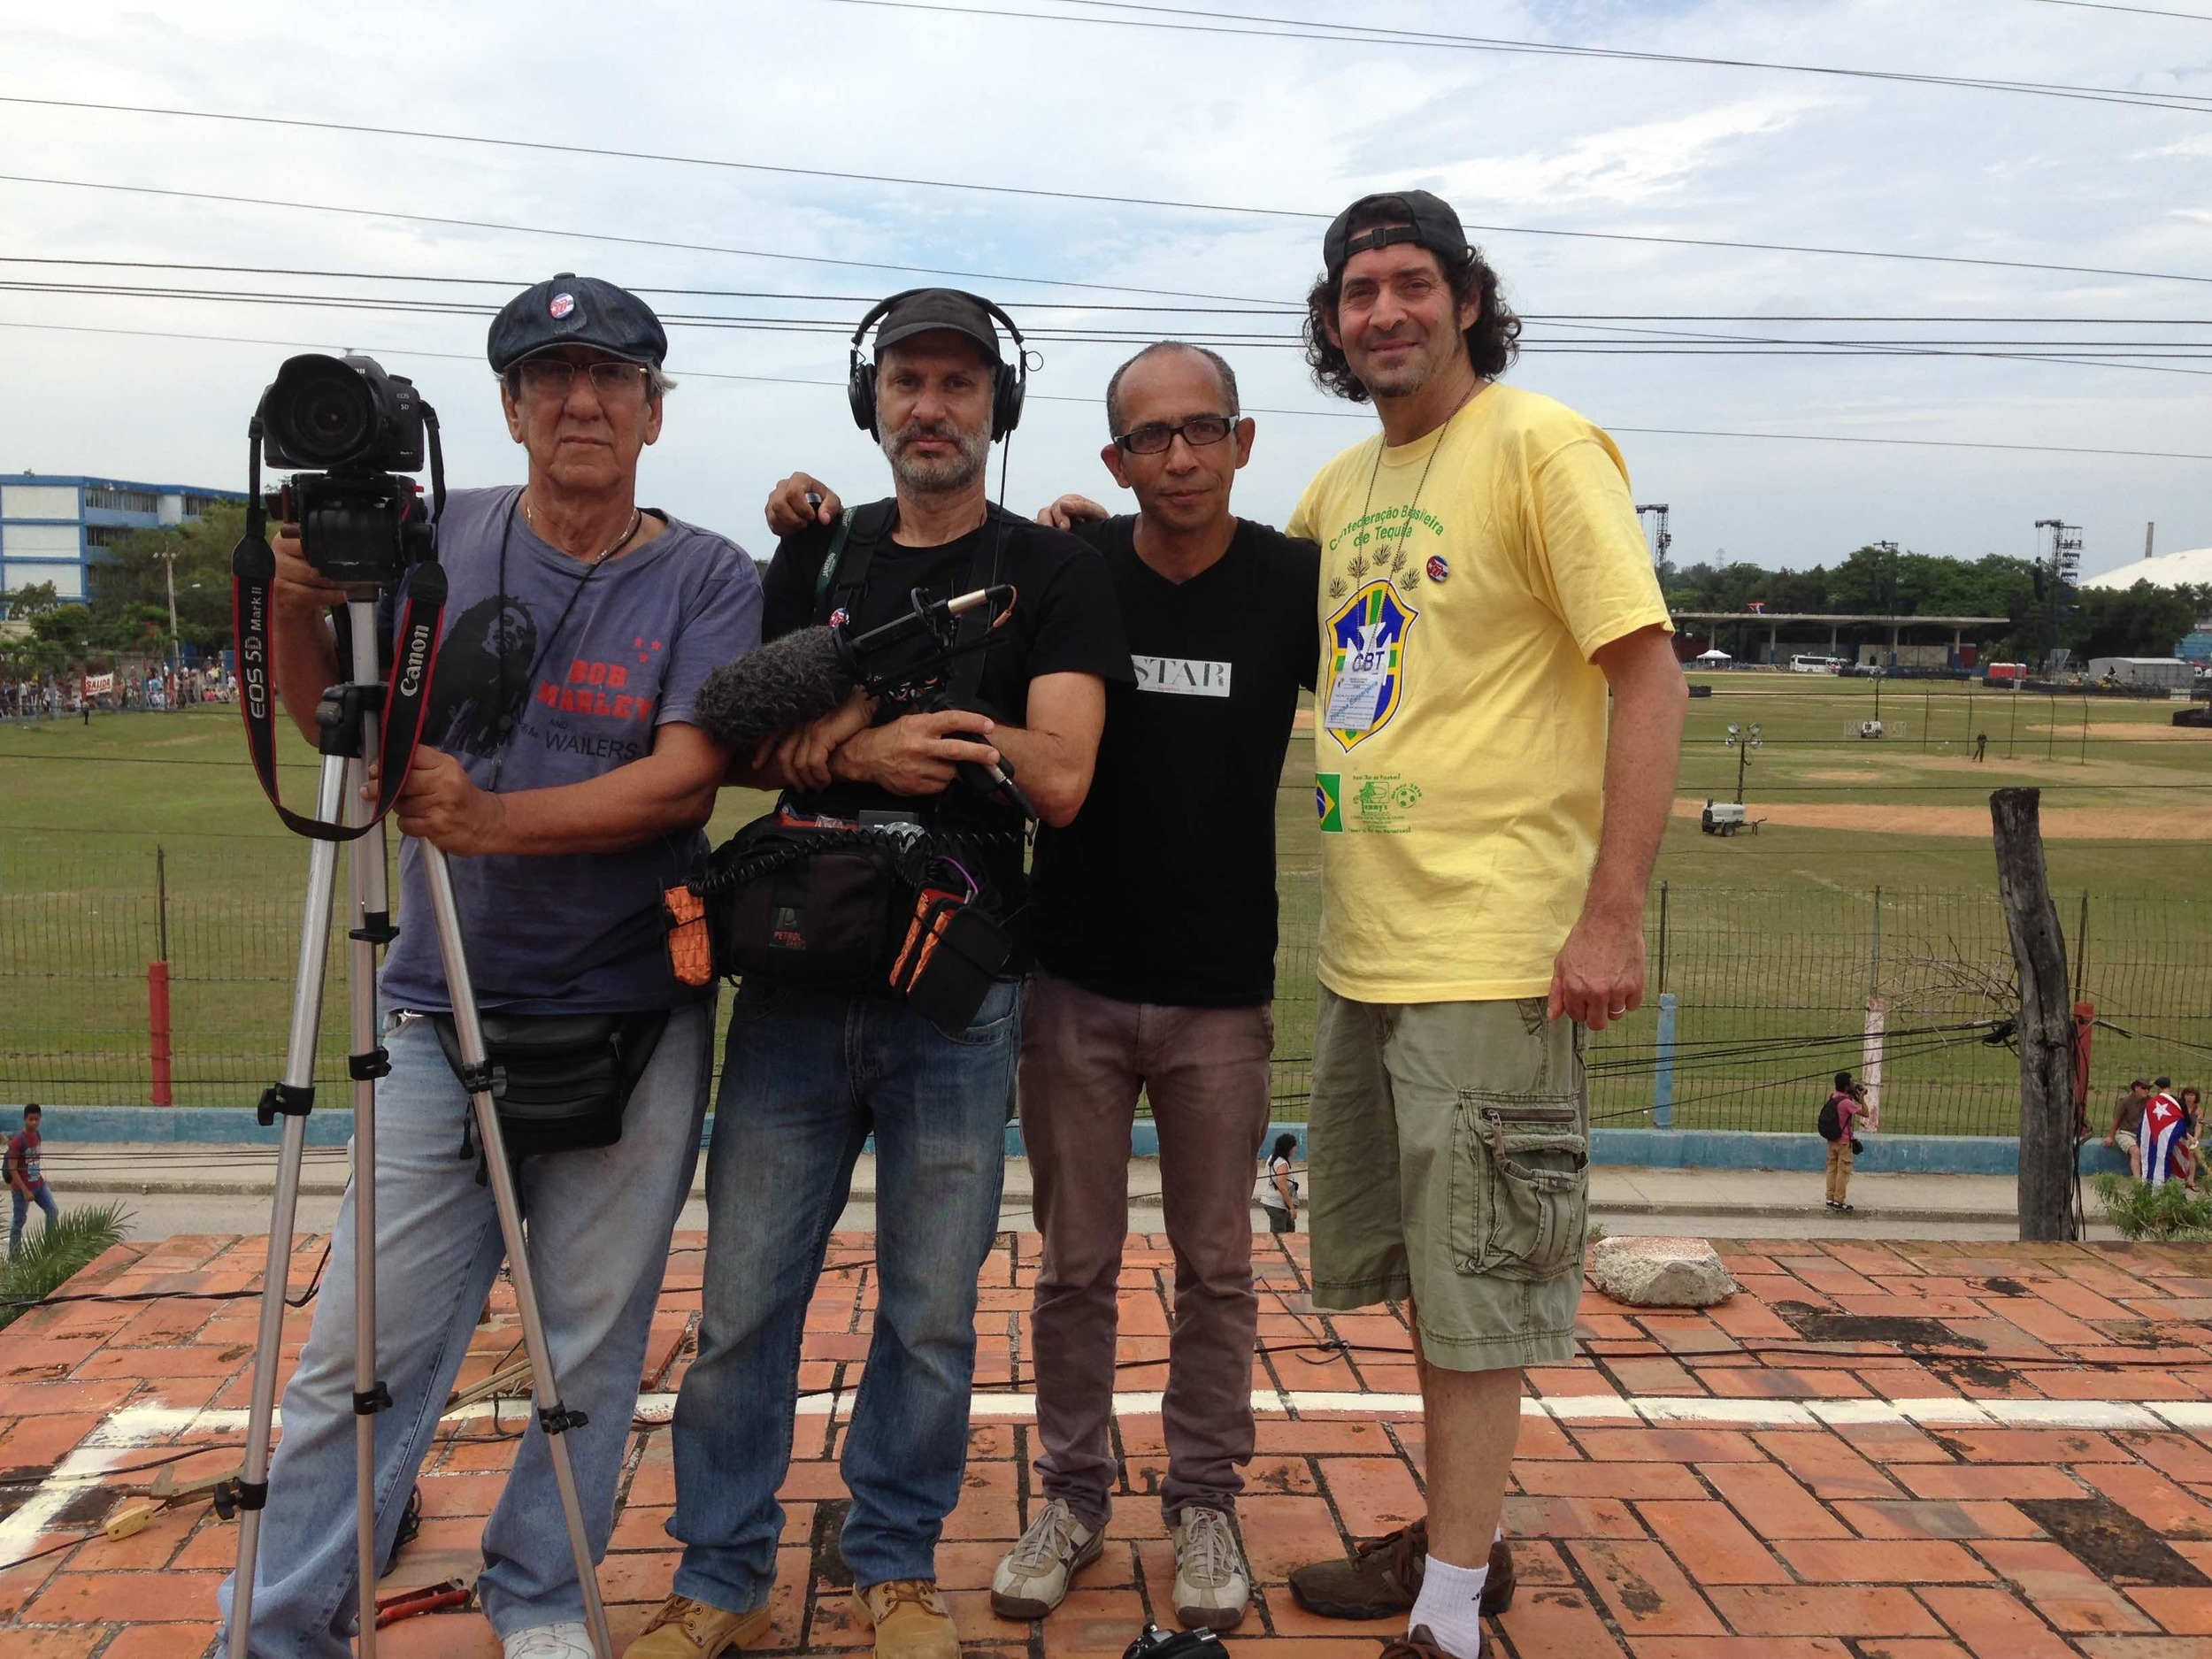 Our crew waits for the concert to begin. (L to R) Ernesto Granado, Javier Figueroa, Ivan Soca and our own Ken Schneider.